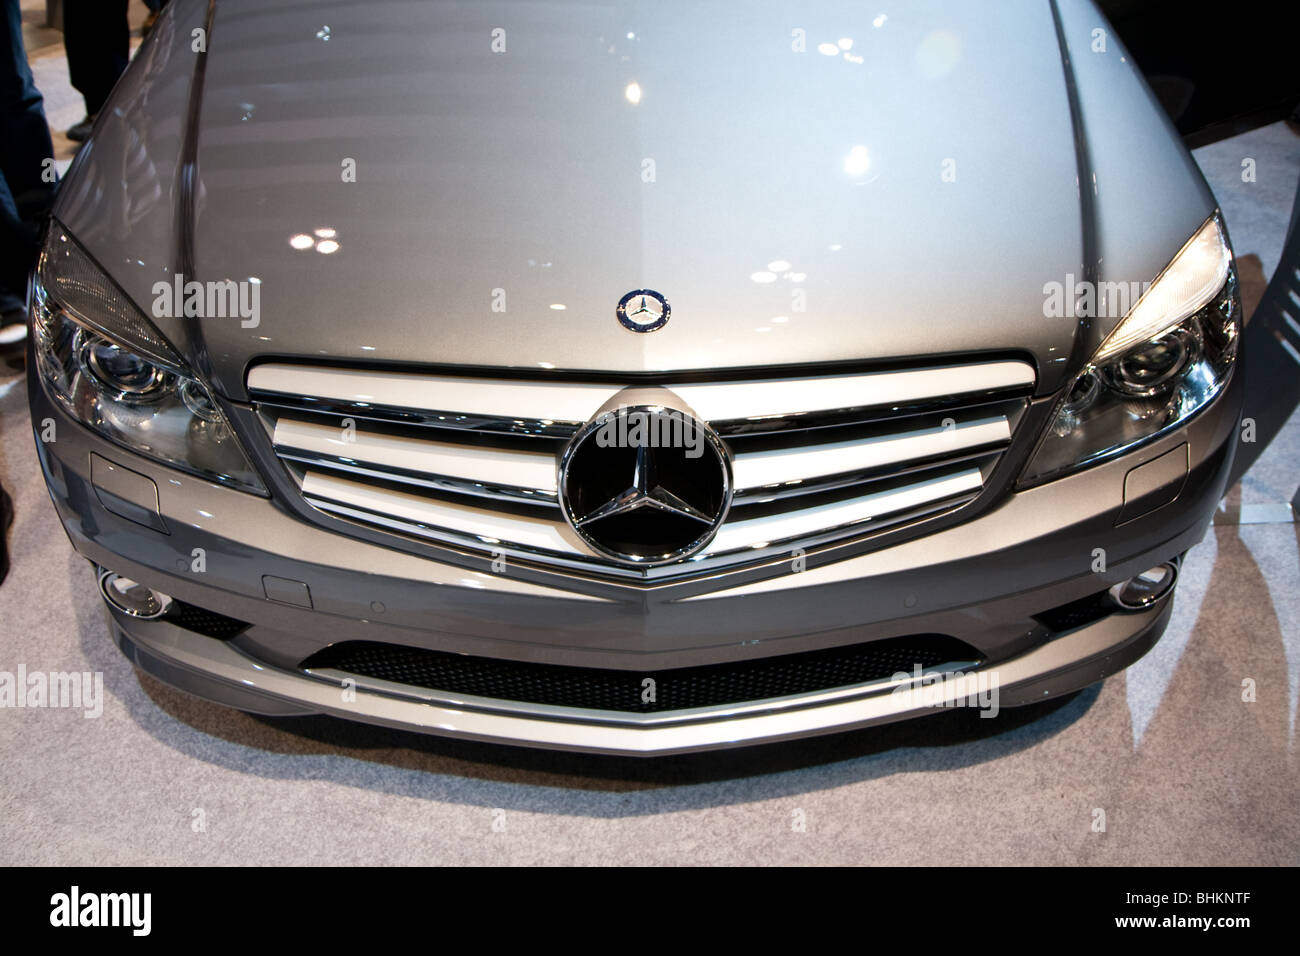 Mercedes benz c class front grill stock photo for Mercedes benz grill